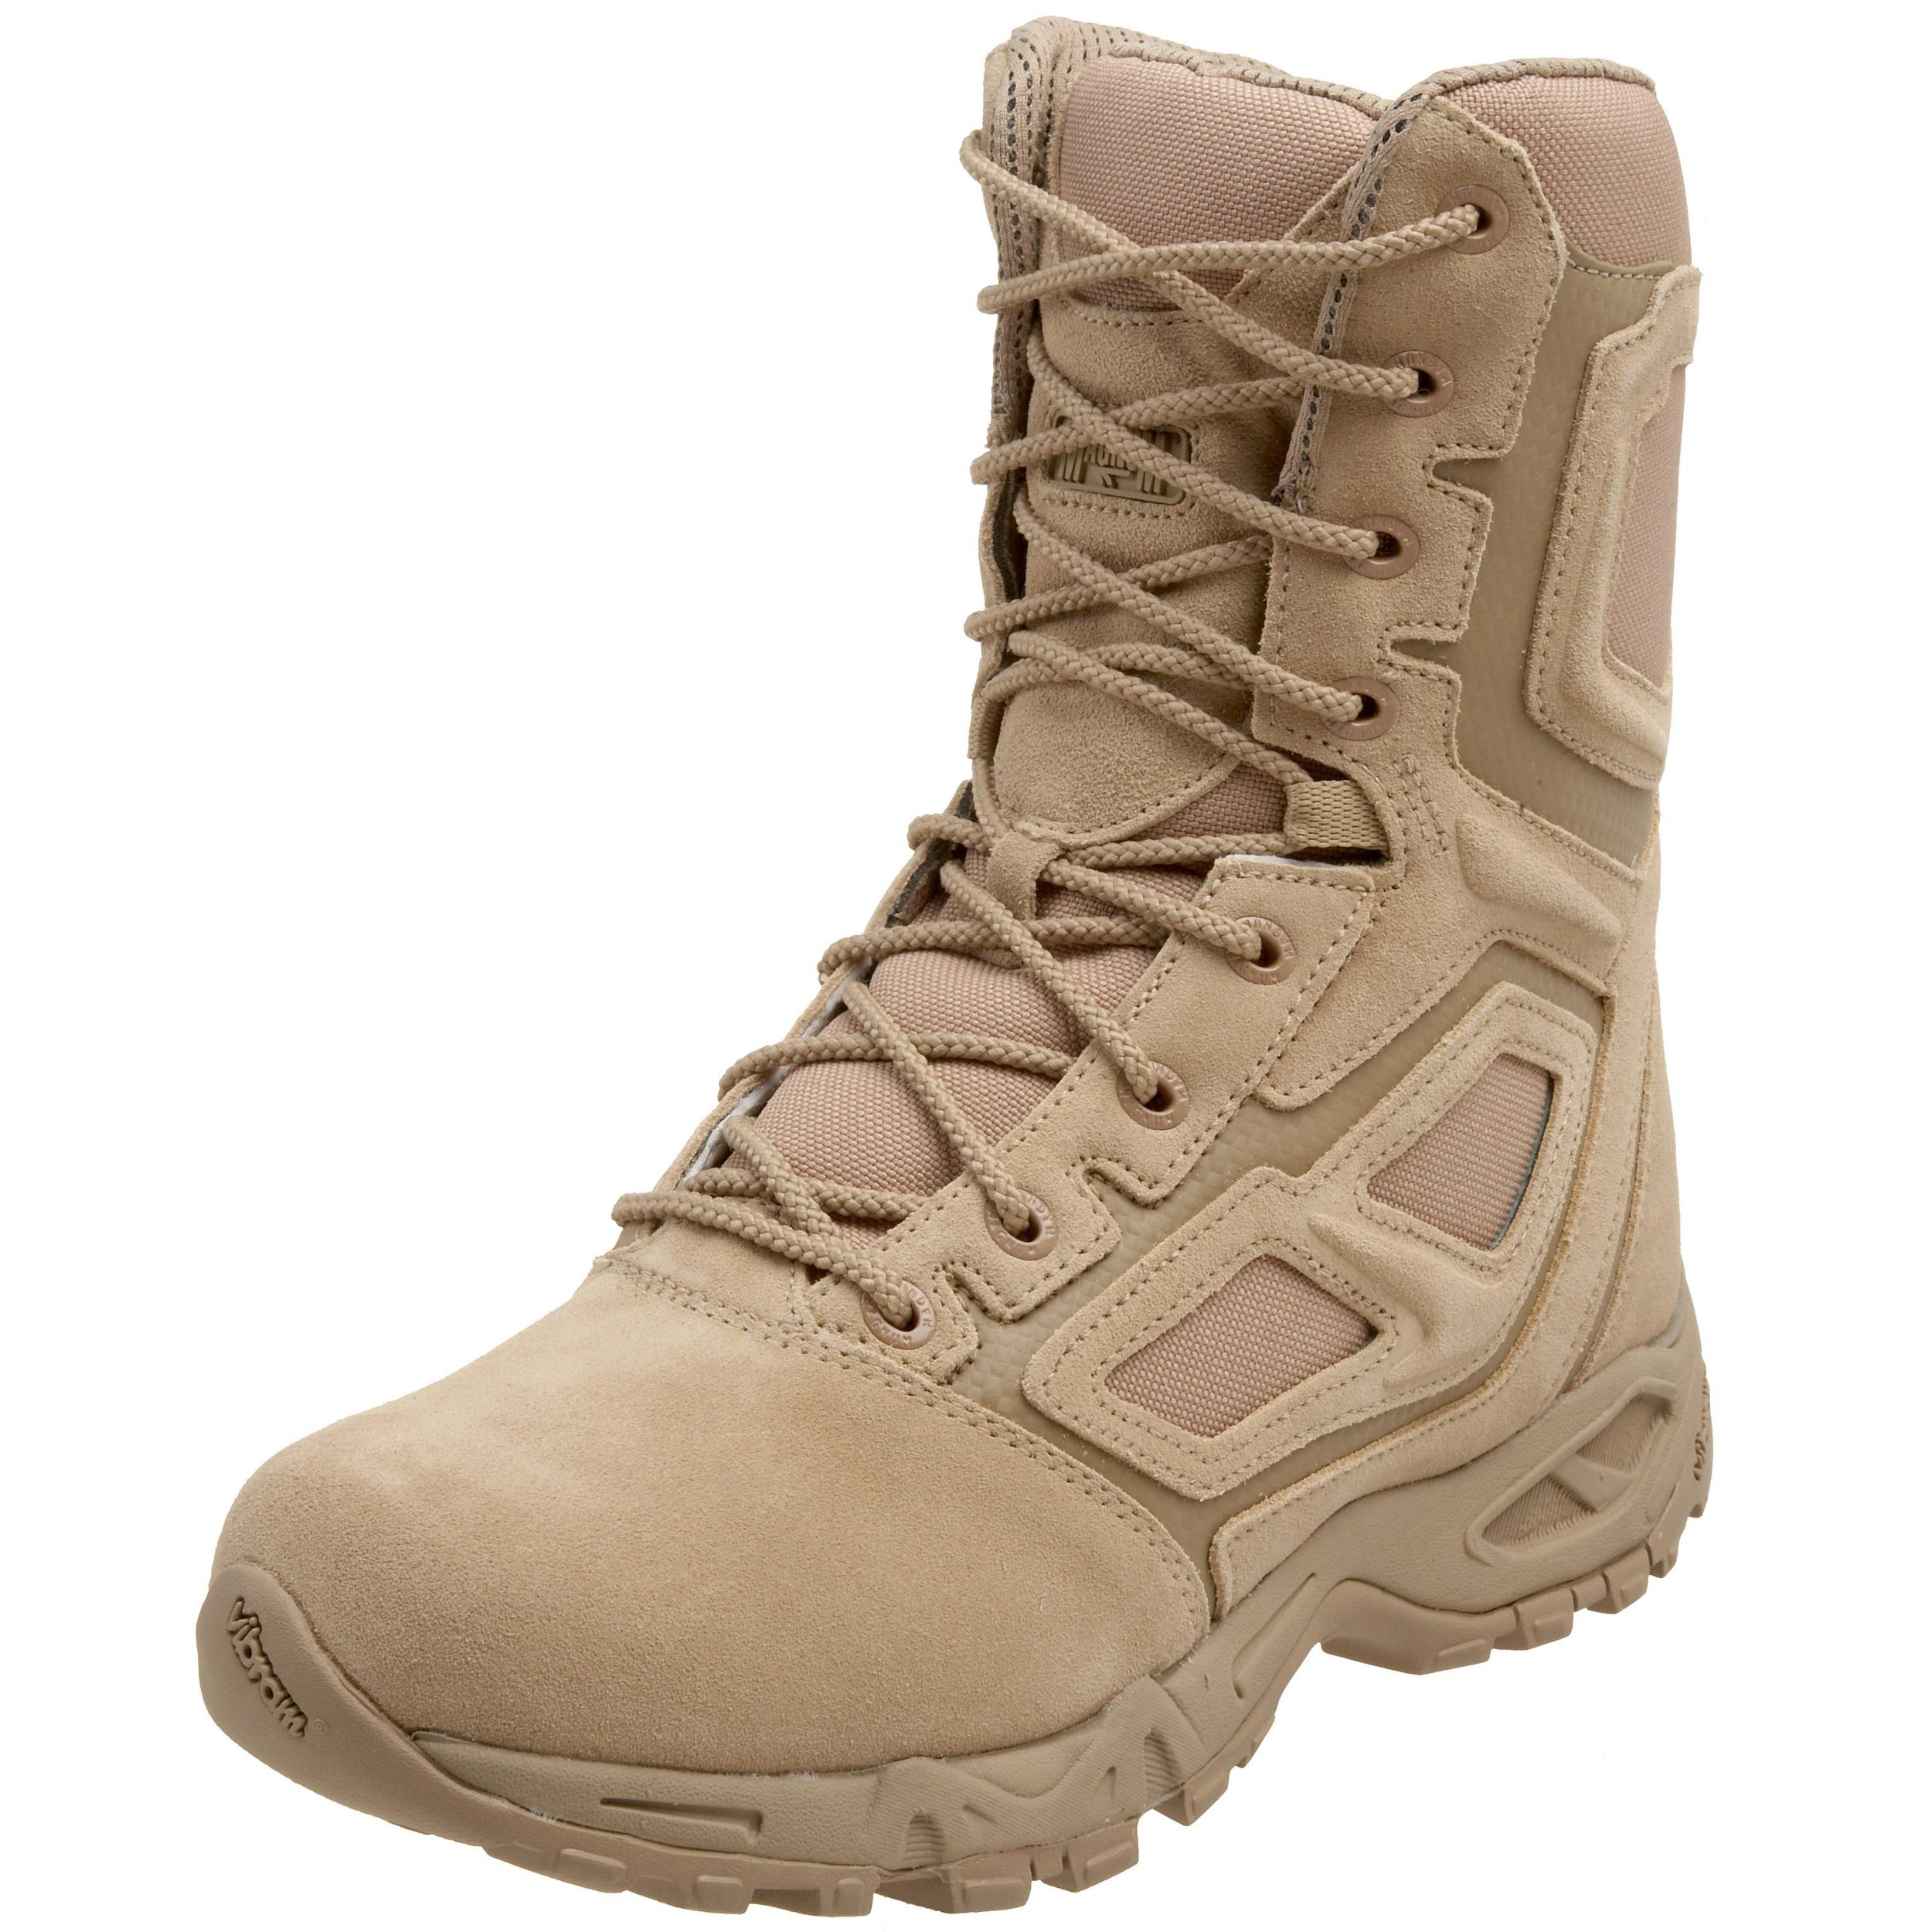 Magnum Men's Elite Spider 8.0 Boot,Desert Tan,7.5 M US by Magnum